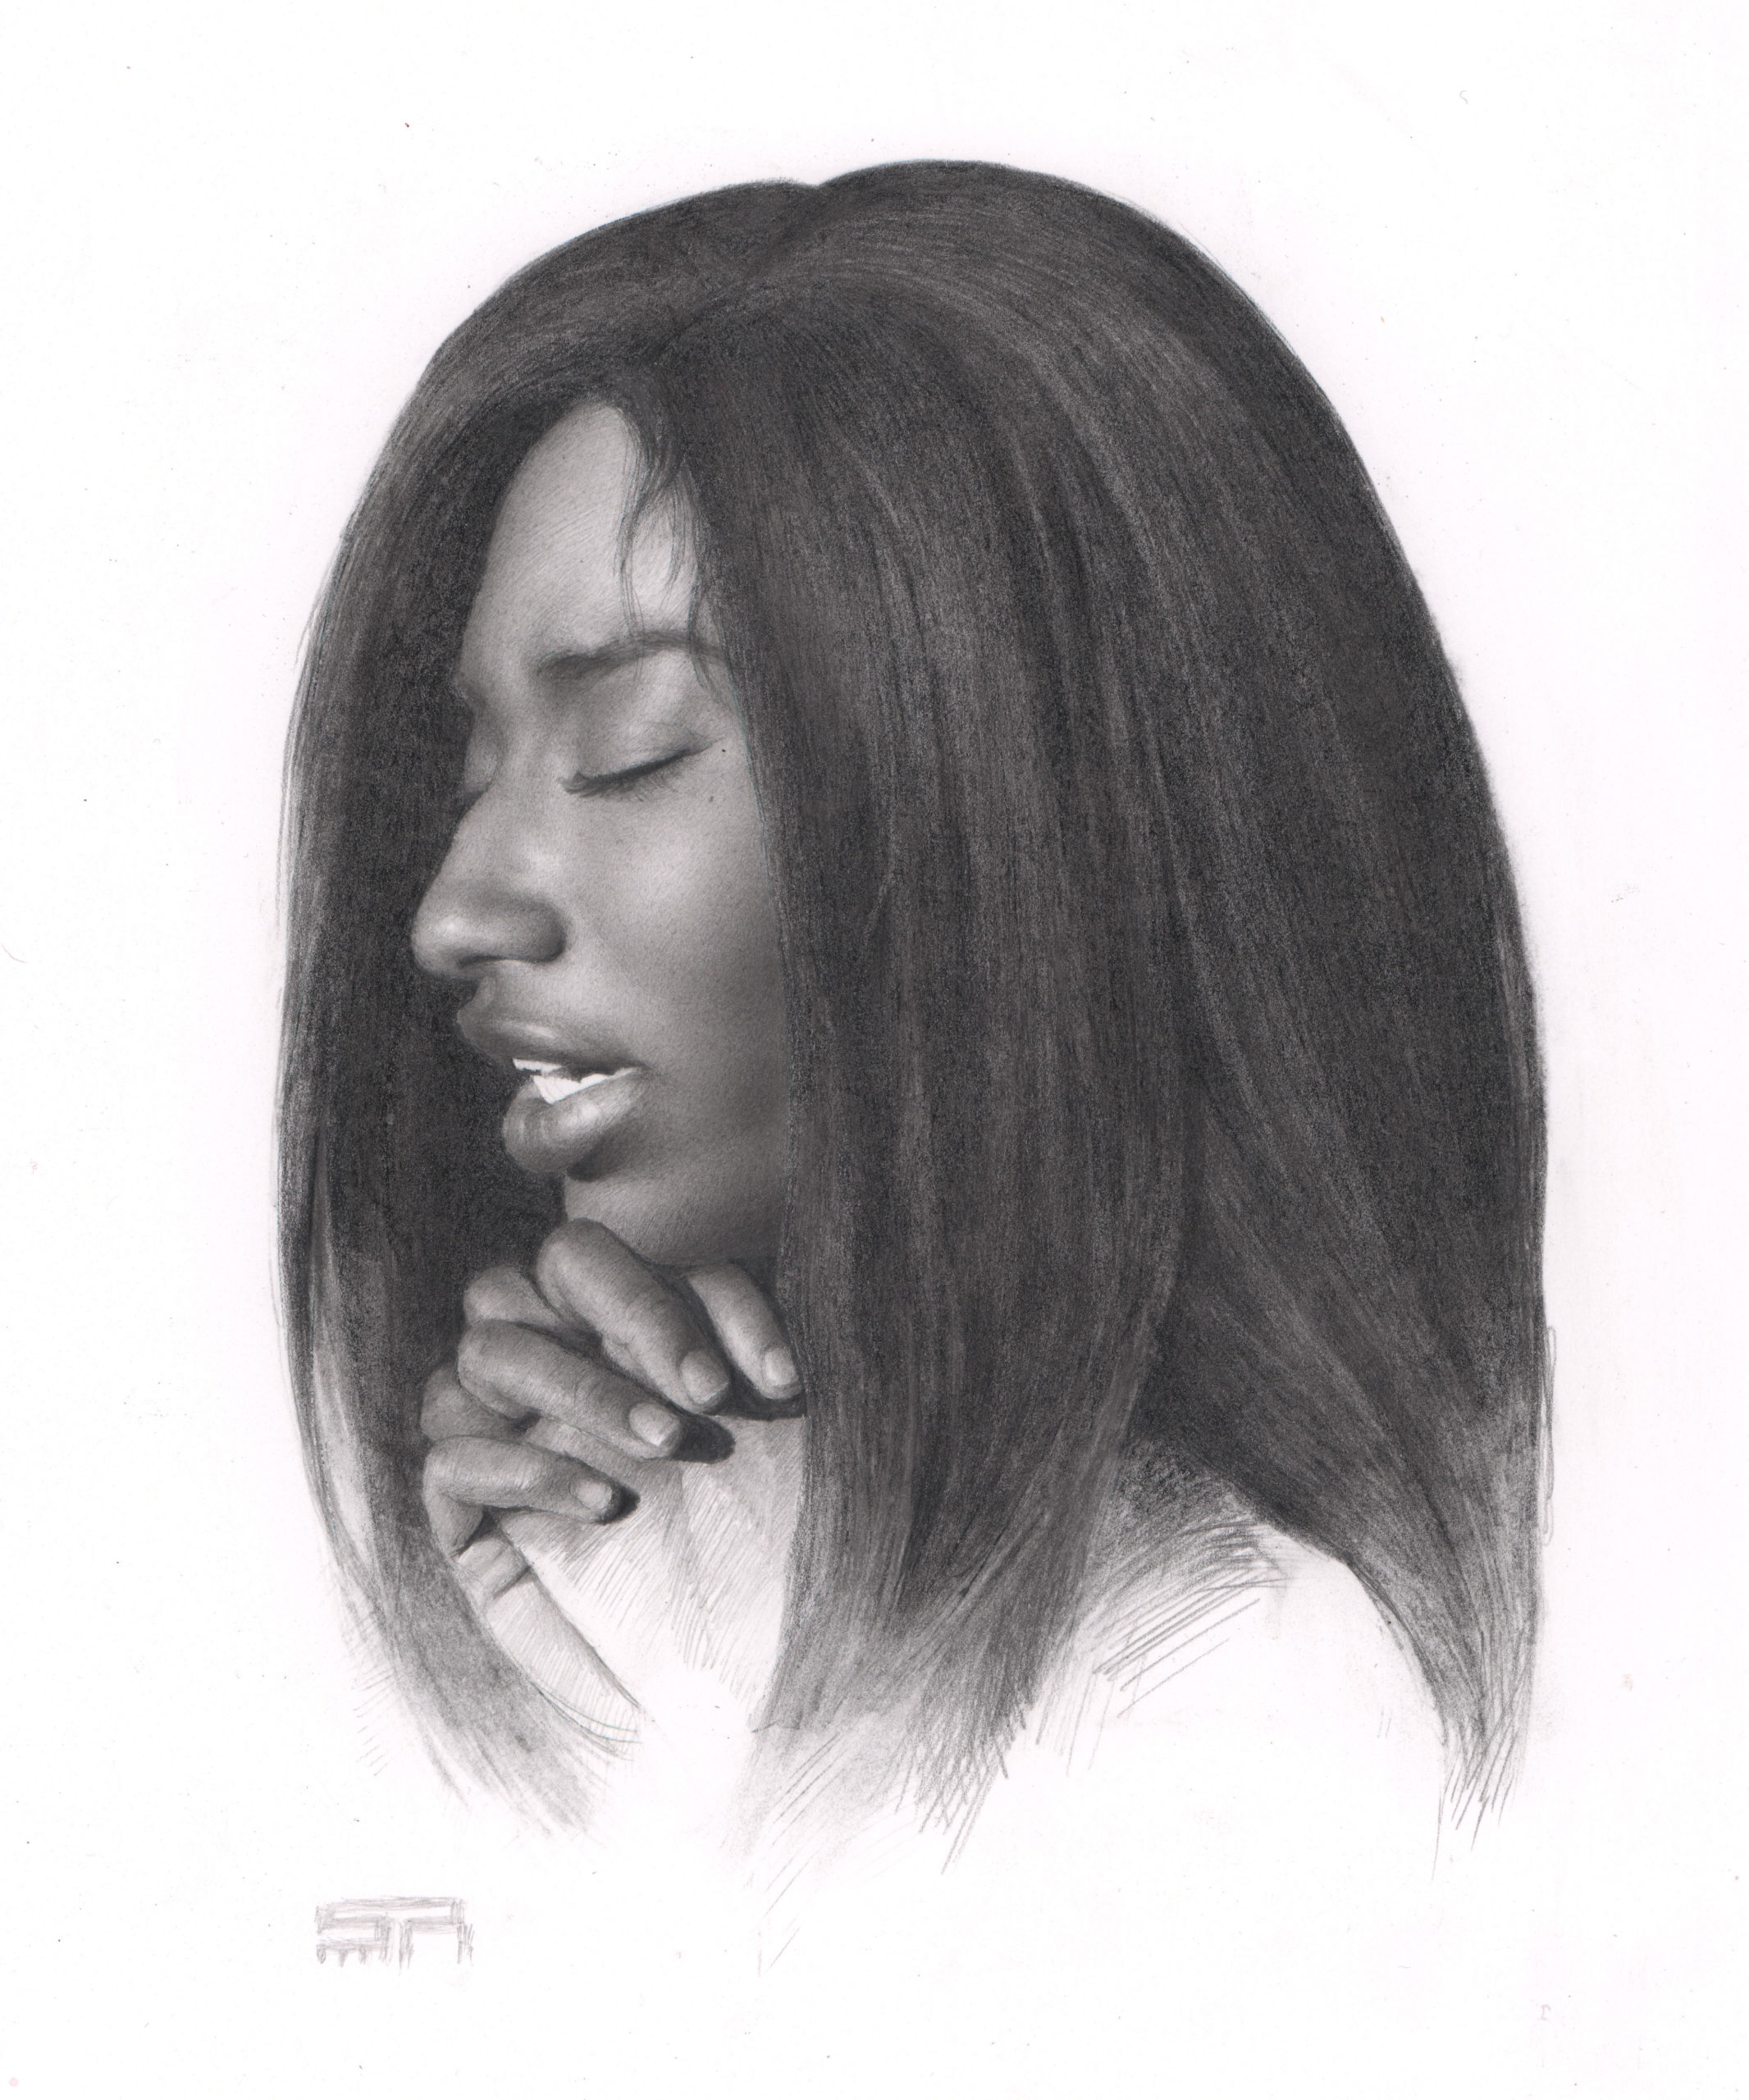 Graphite portrait drawing - Stanley Rayfield - RealismToday.com